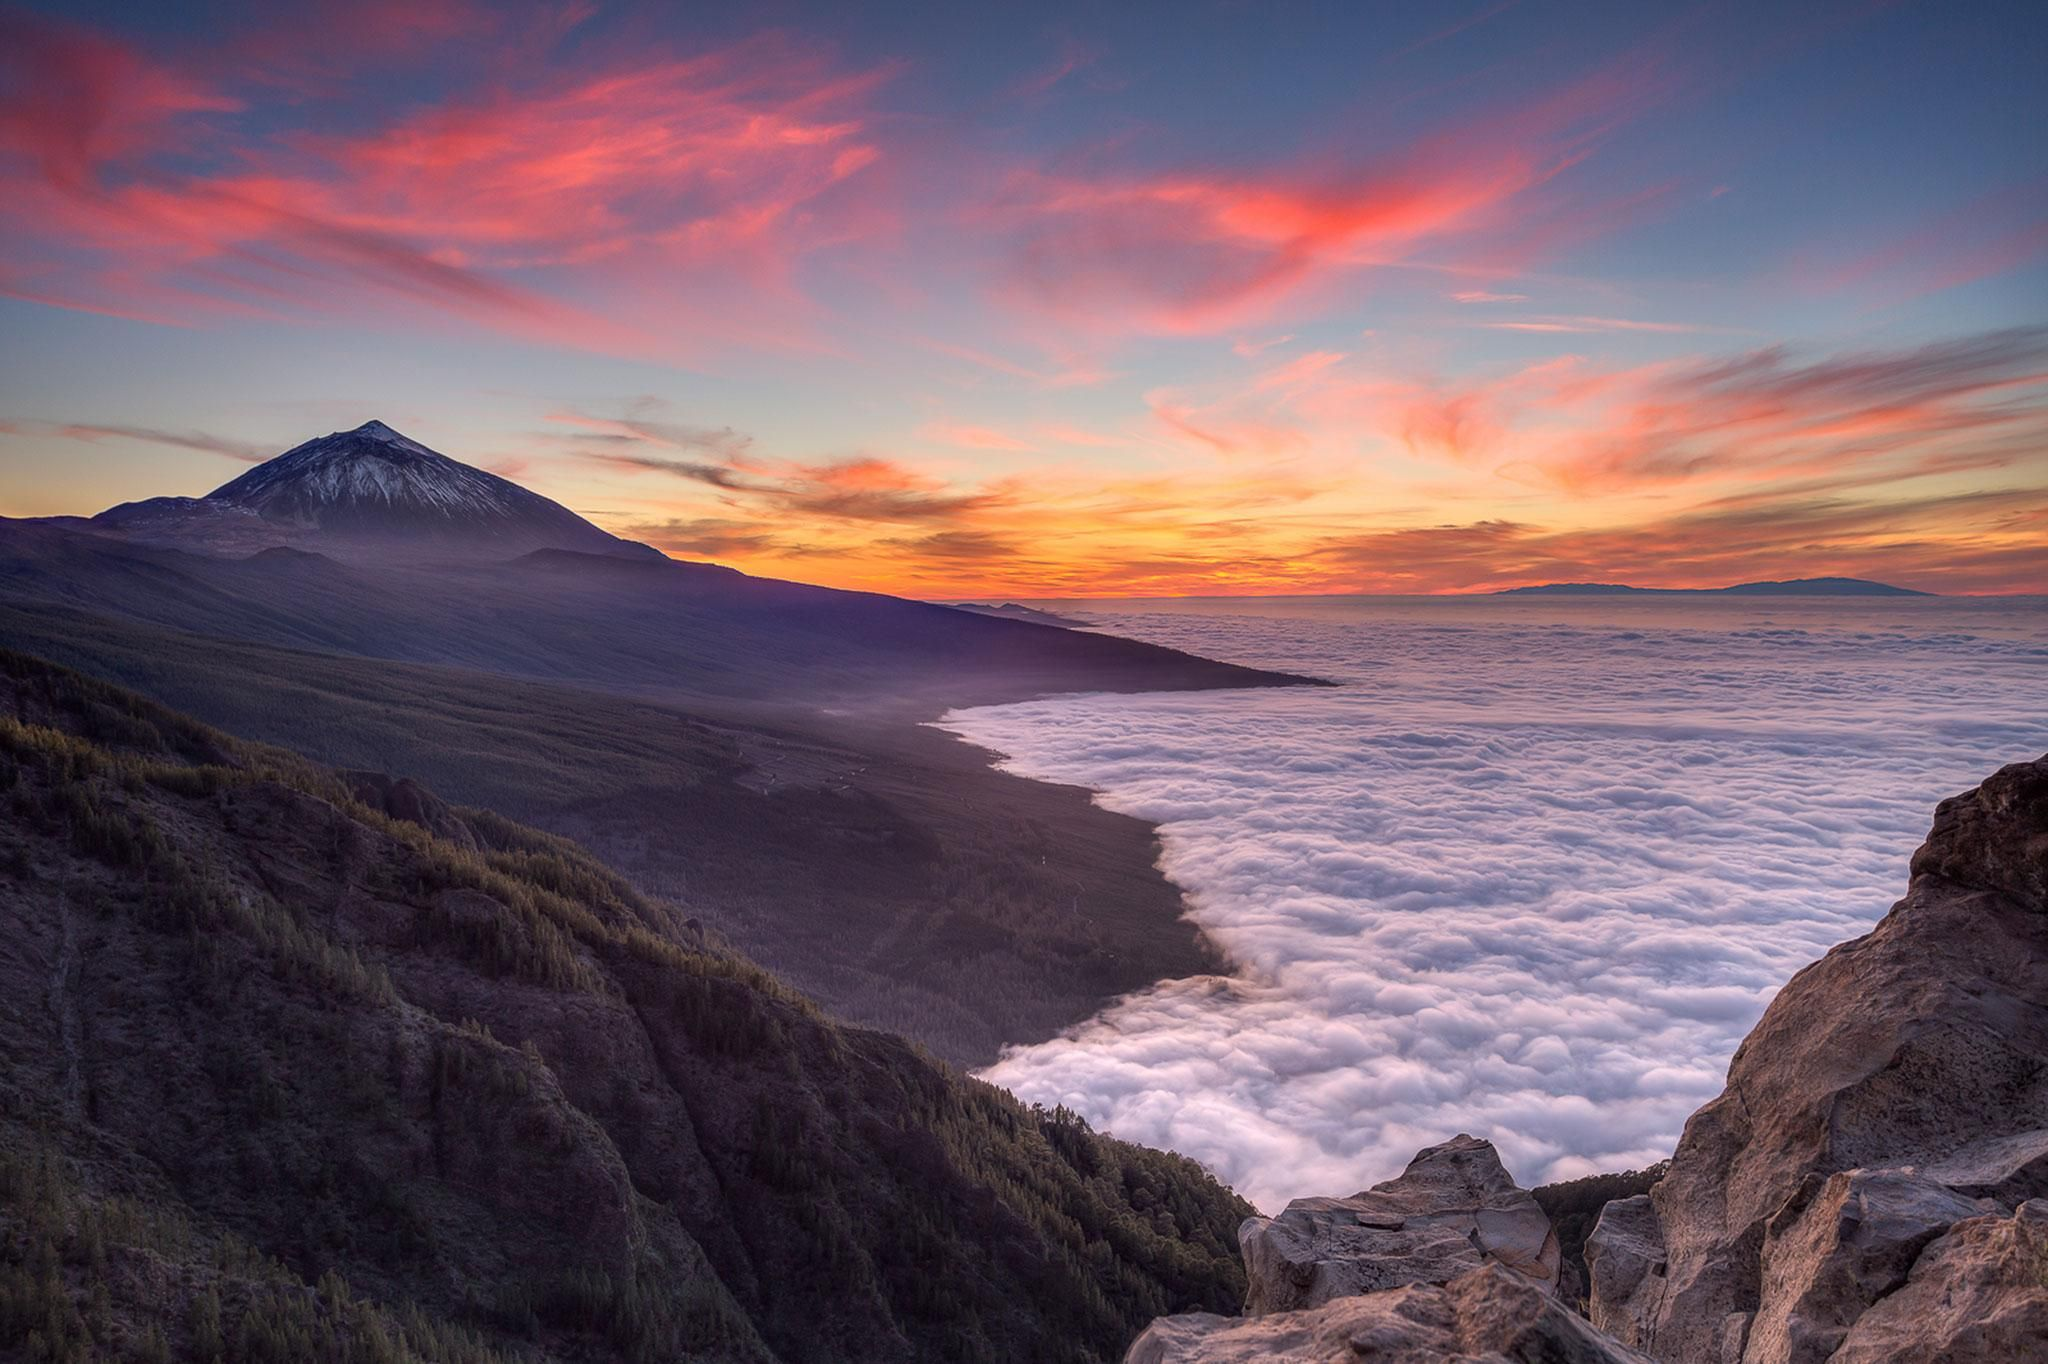 Clouds Like Oceans Mt Teide Canary Islands 2048 1364 Oc Michael Bolognesi Best Sunset Pretty Landscapes Around The World In 80 Days